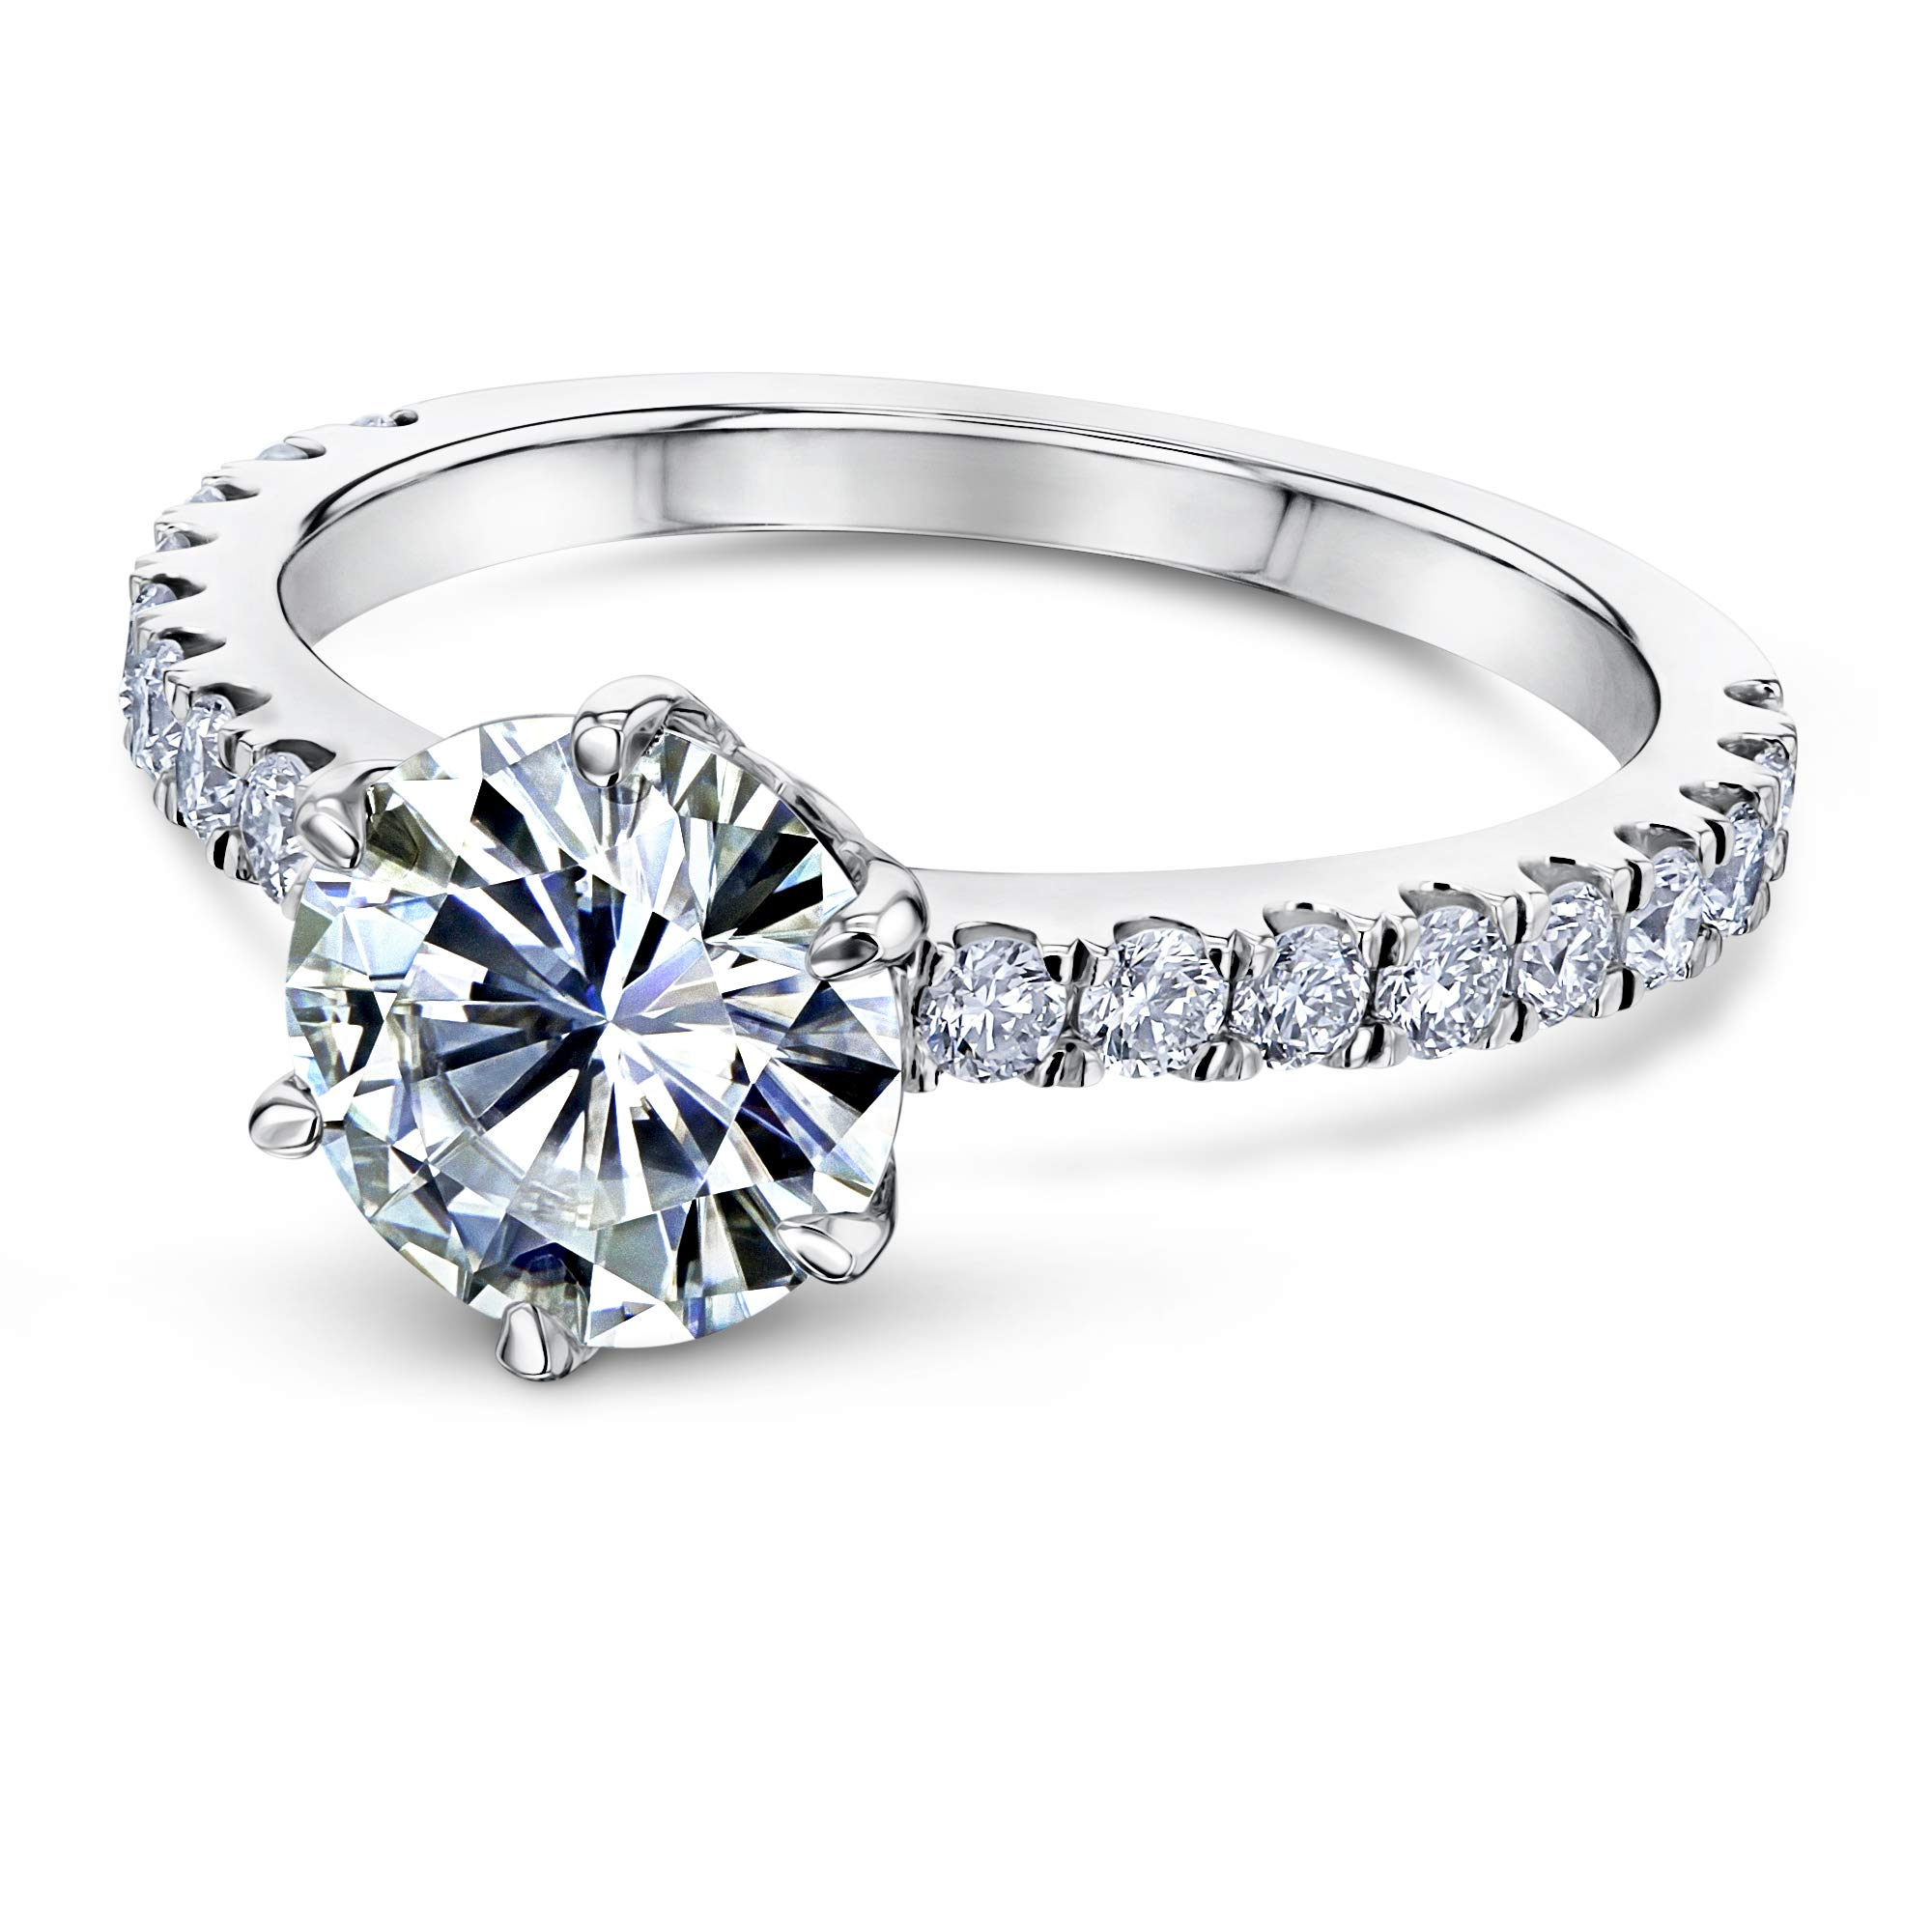 2-2/5ct.tw 6-Prong Solitaire Moissanite and Side Stone Classic Engagement Ring 14k White Gold (DEF/VS, GH/I1-I2), 6.5